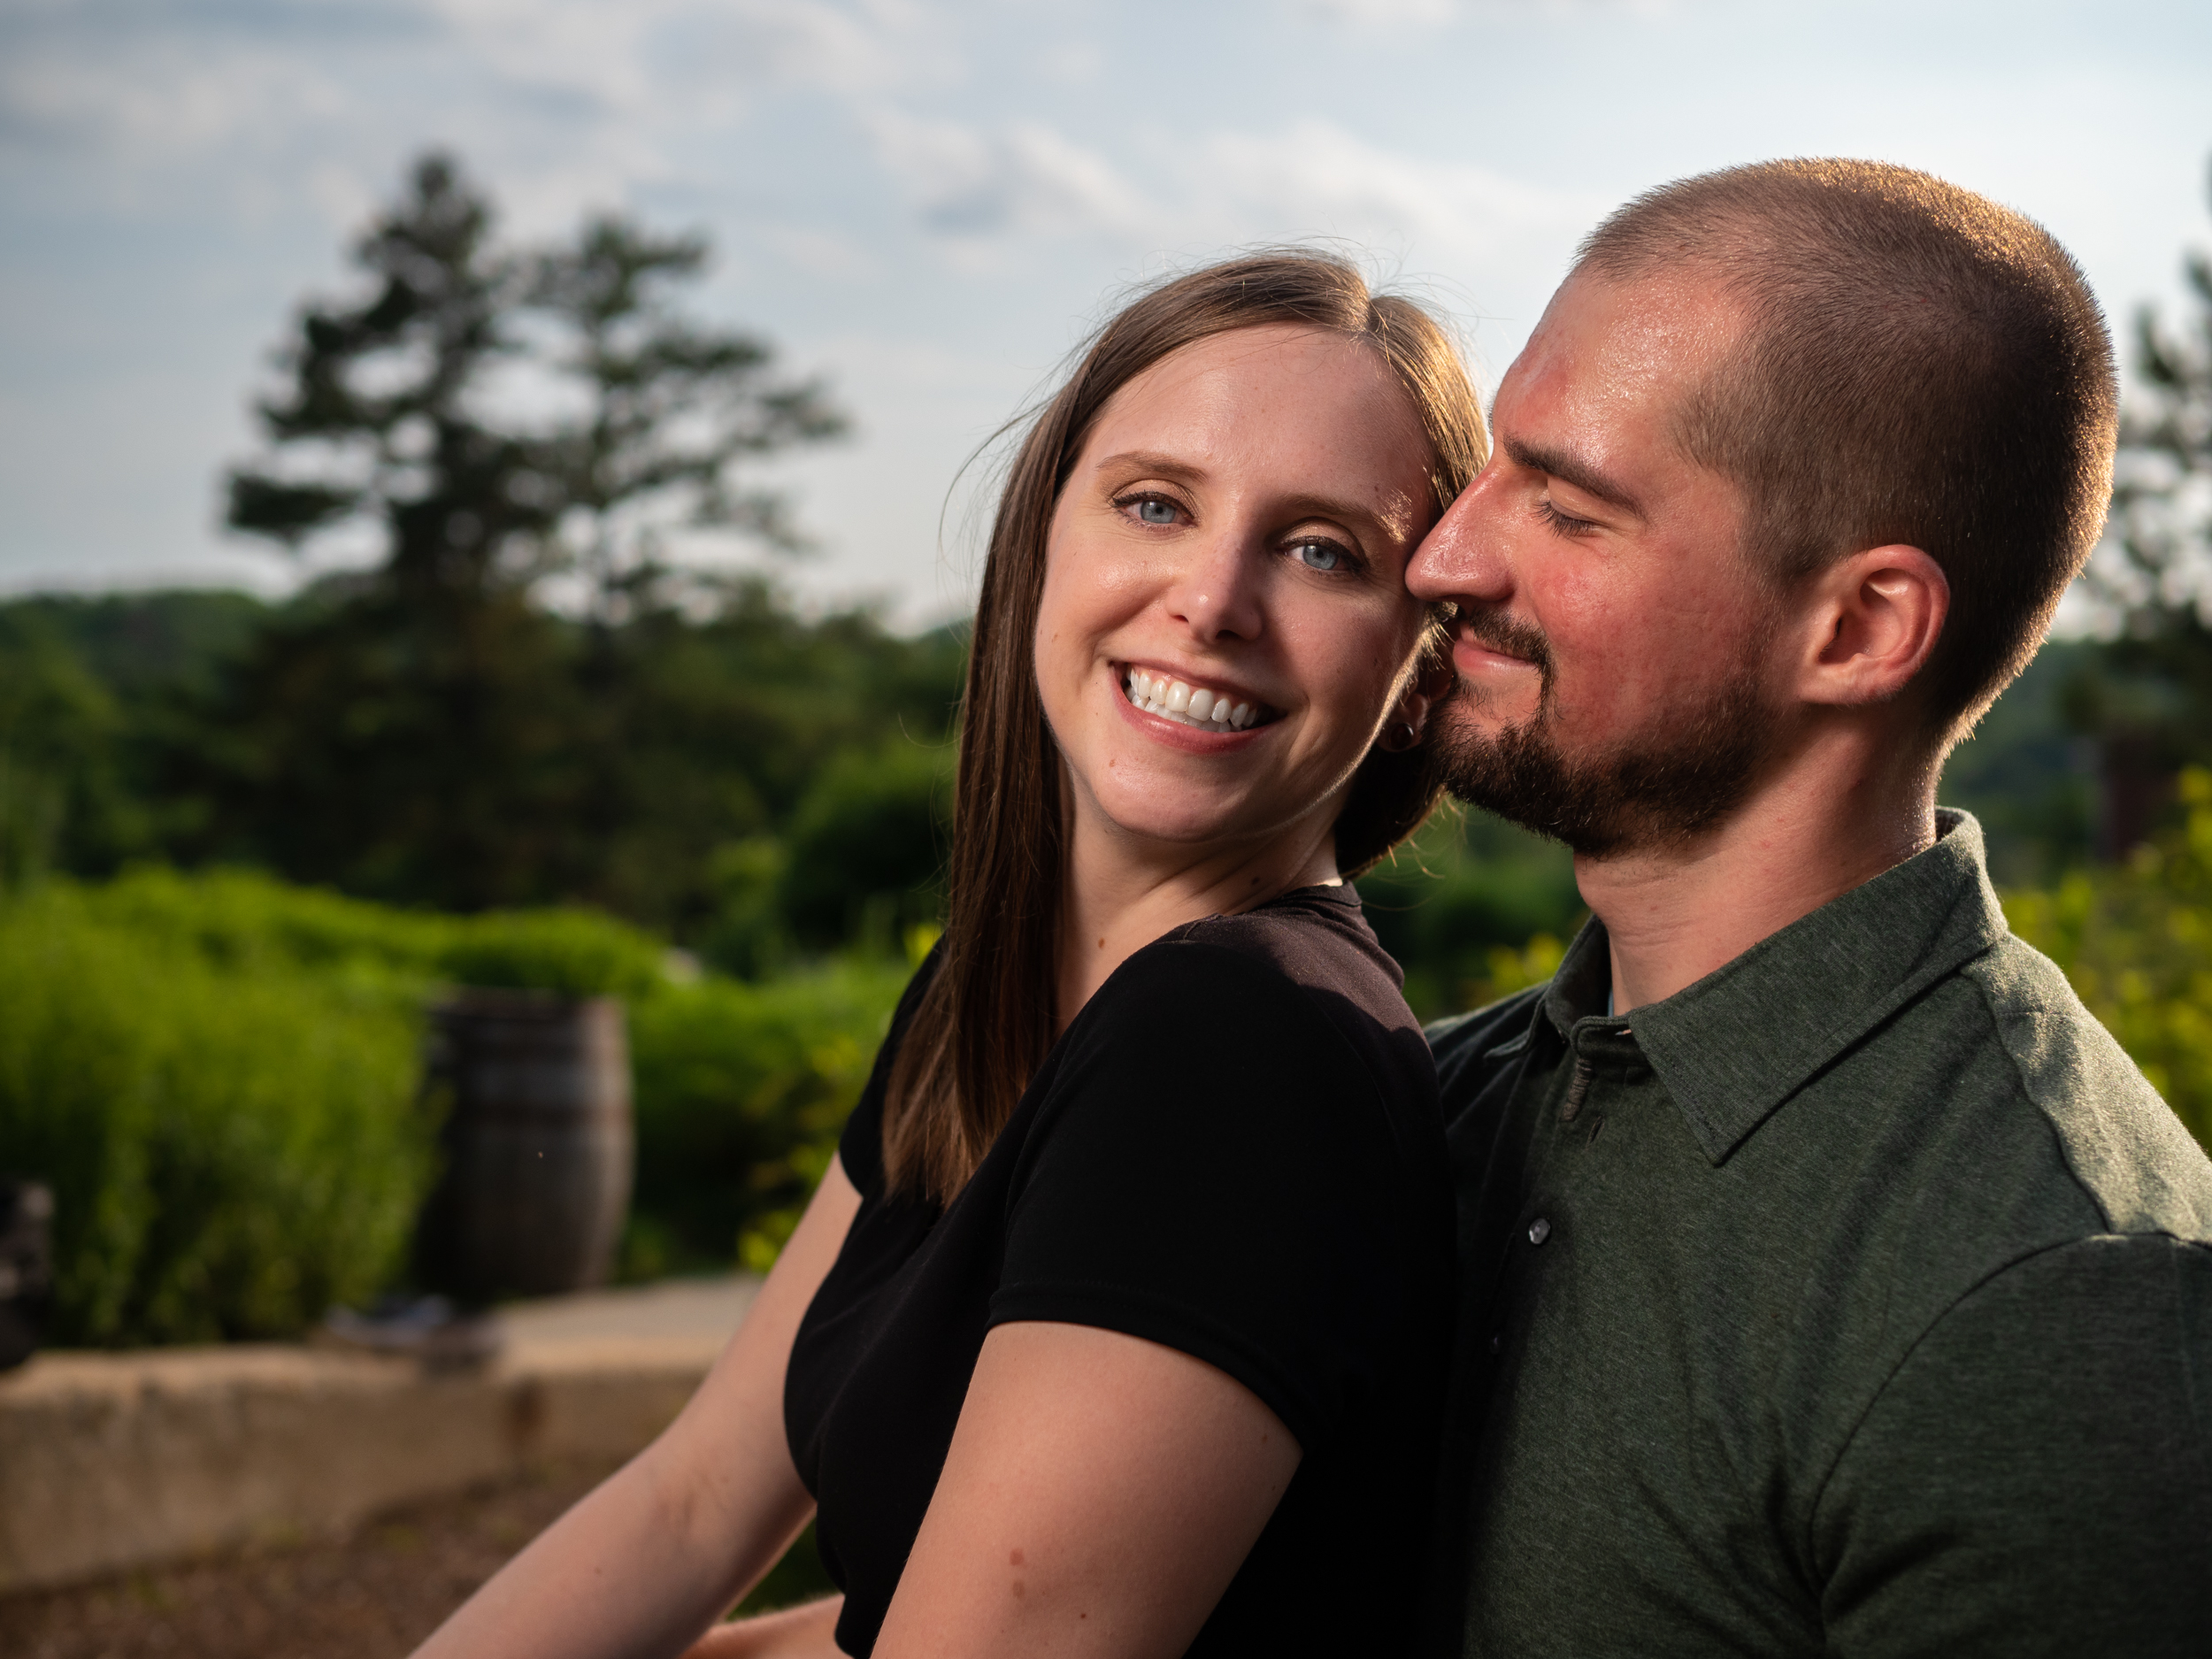 saxapahaw-brewery-river-chapel hill-carrboro-engagement-portraits-wedding-emily-brad-30439.jpg